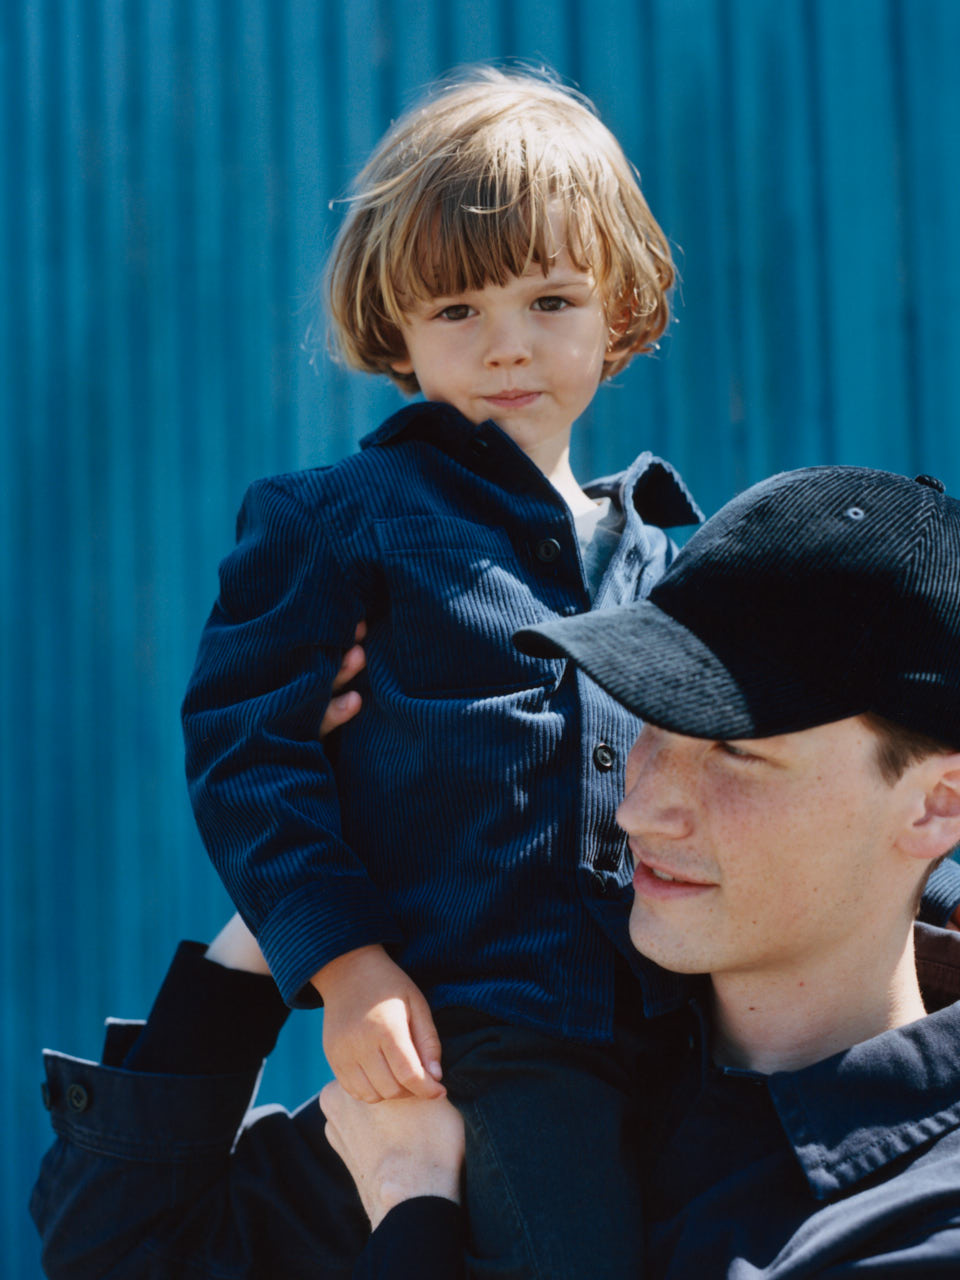 Male model with a black corduroy cap on carrying a child model wearing a blue corduroy jacket